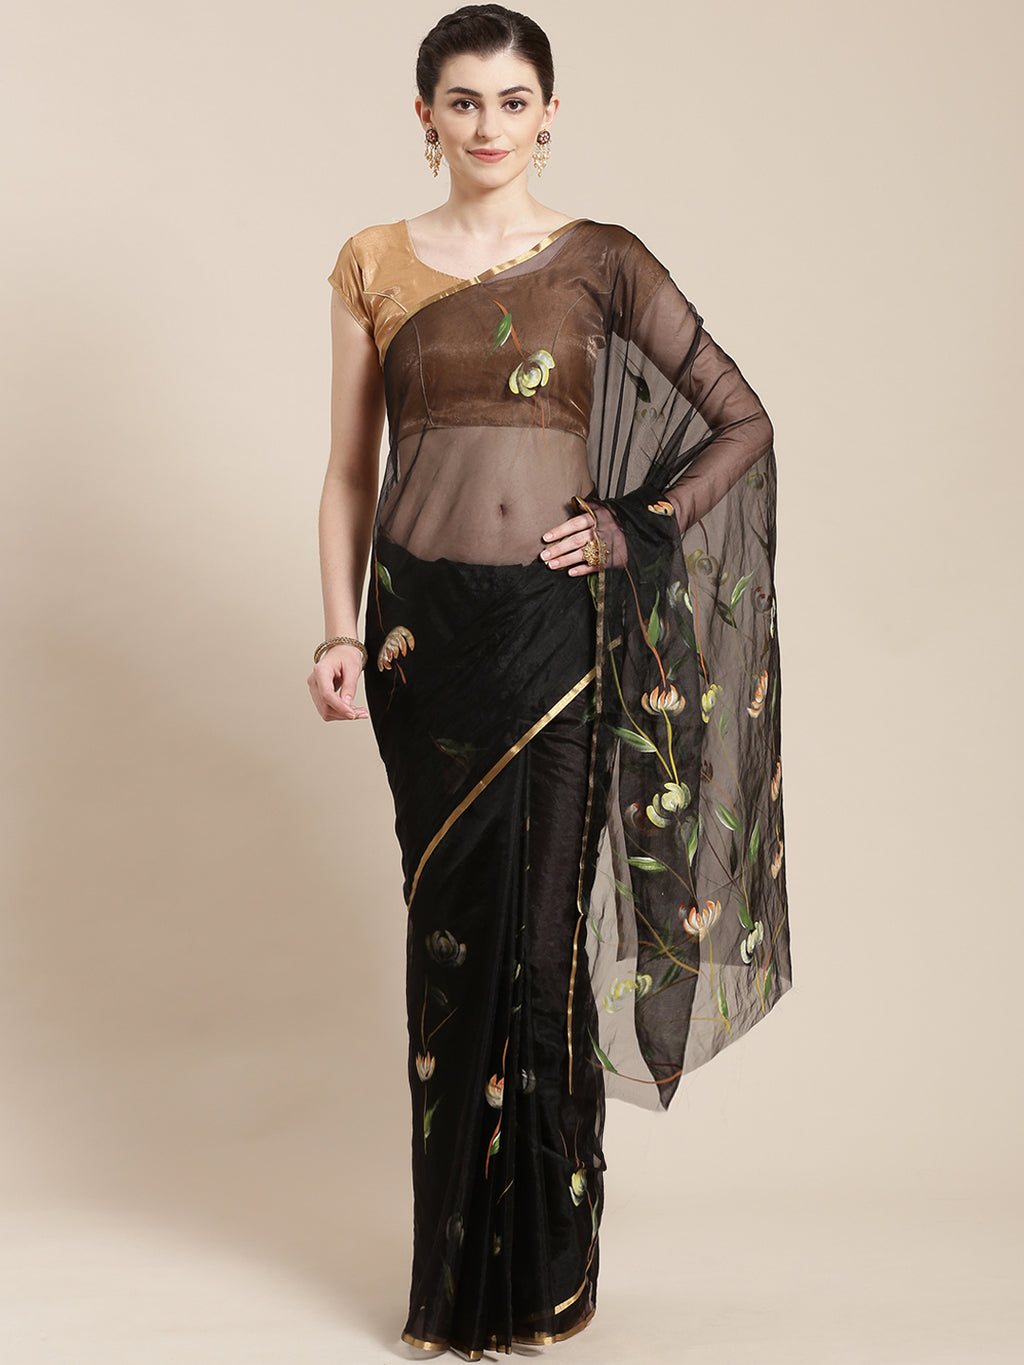 Black & Green Floral Hand Painted Organza Saree-Saree-Kalakari India-BHKPSA0120-Hand Painted, Organza, Sarees, Sustainable Fabrics, Traditional Weave-[Linen,Ethnic,wear,Fashionista,Handloom,Handicraft,Indigo,blockprint,block,print,Cotton,Chanderi,Blue, latest,classy,party,bollywood,trendy,summer,style,traditional,formal,elegant,unique,style,hand,block,print, dabu,booti,gift,present,glamorous,affordable,collectible,Sari,Saree,printed, holi, Diwali, birthday, anniversary, sustainable, organic, sca